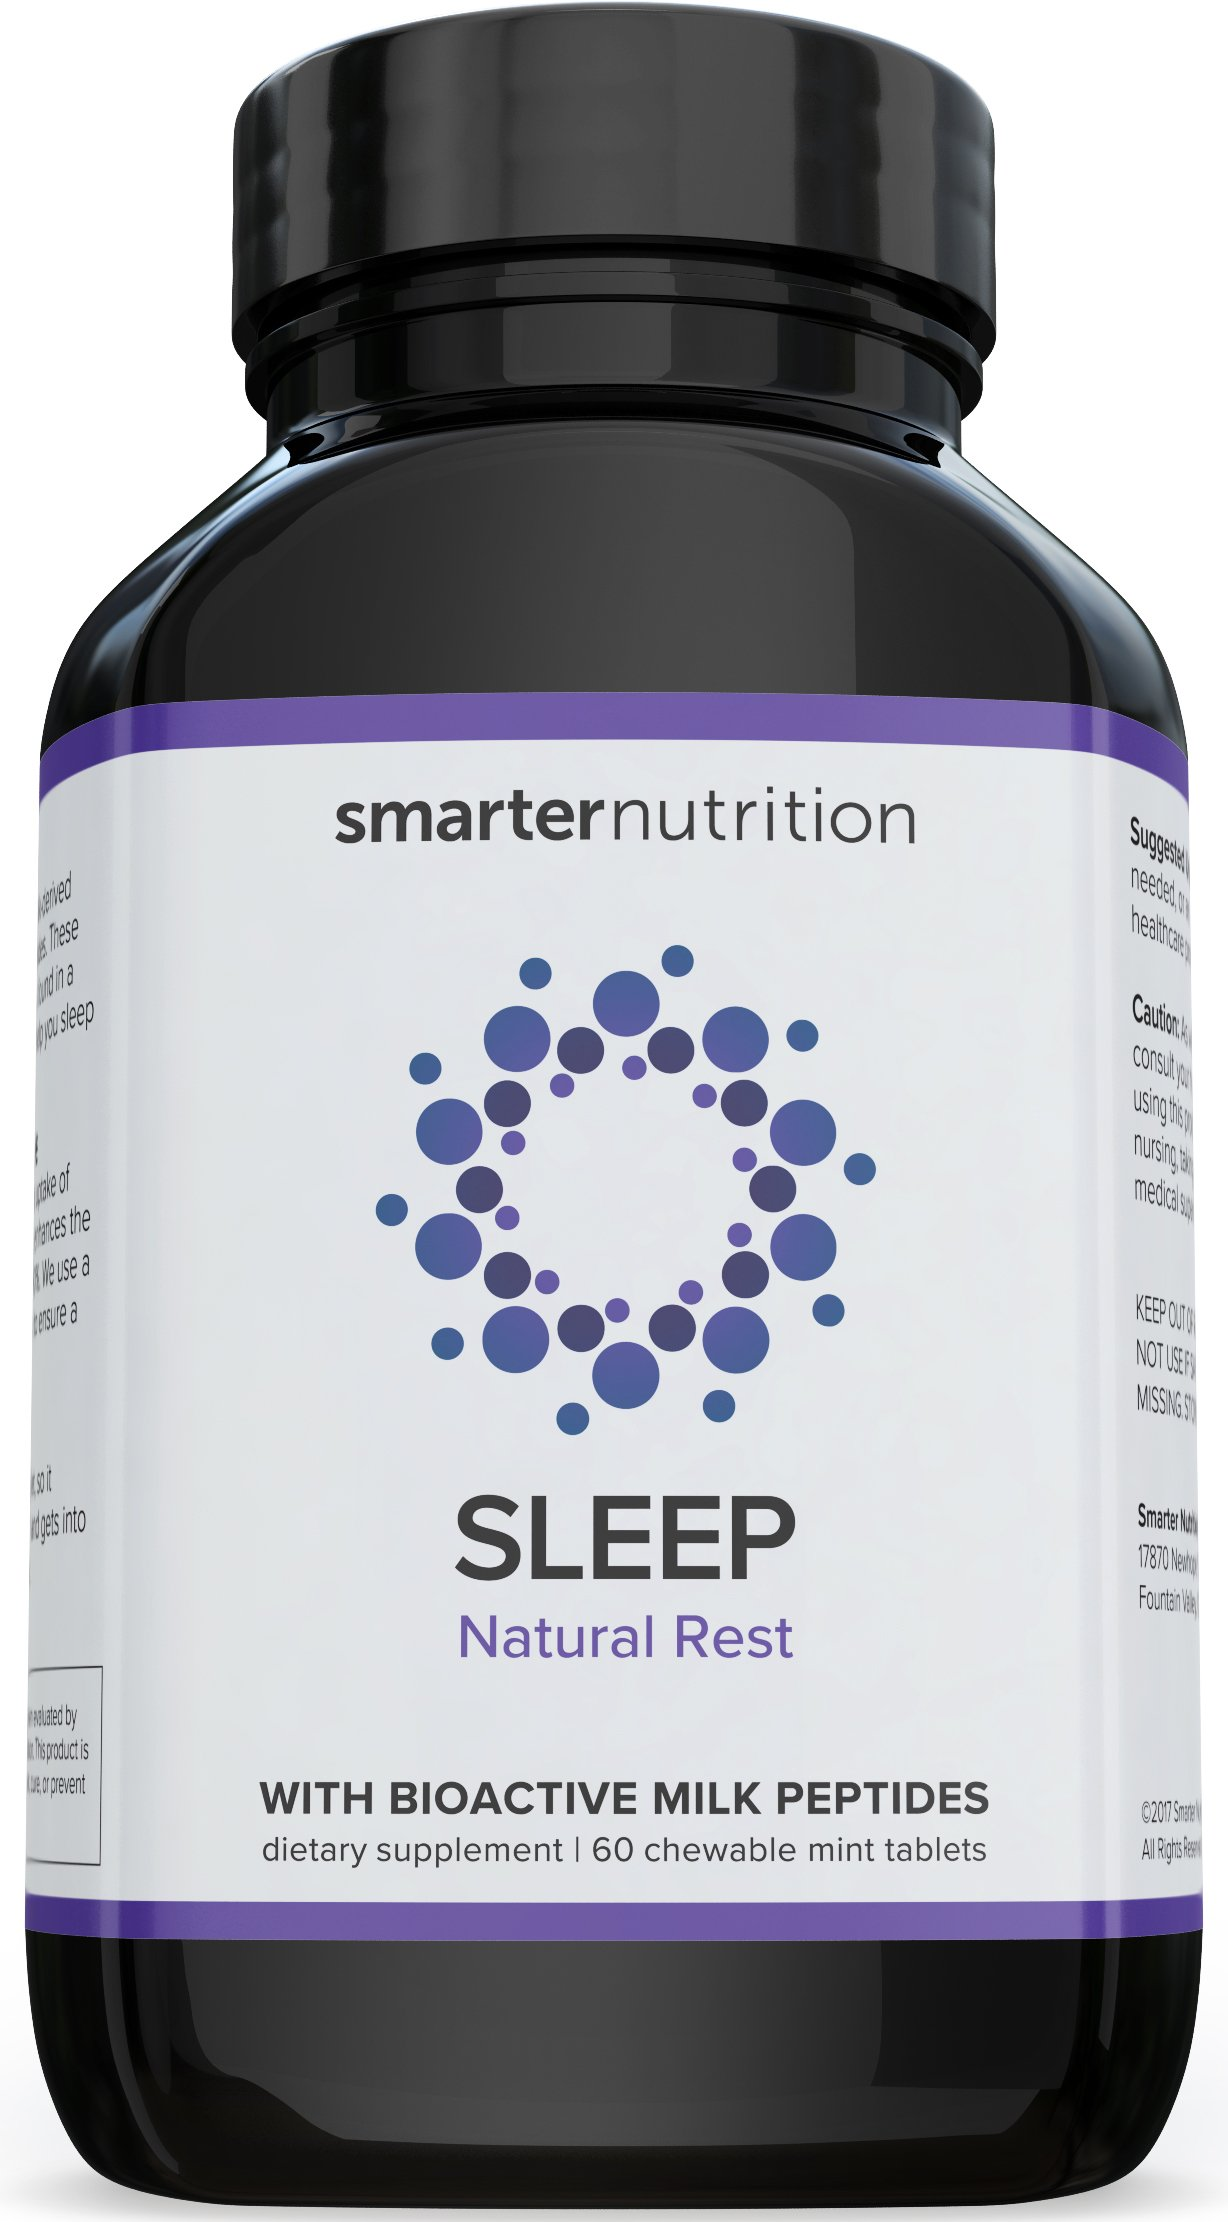 Smarter Sleep, Nighttime Sleep Aid with Bioactive Milk Peptides, 60 Chewable Mint Tablets (1 Month Supply) (1) by Smarter Nutrition (Image #1)